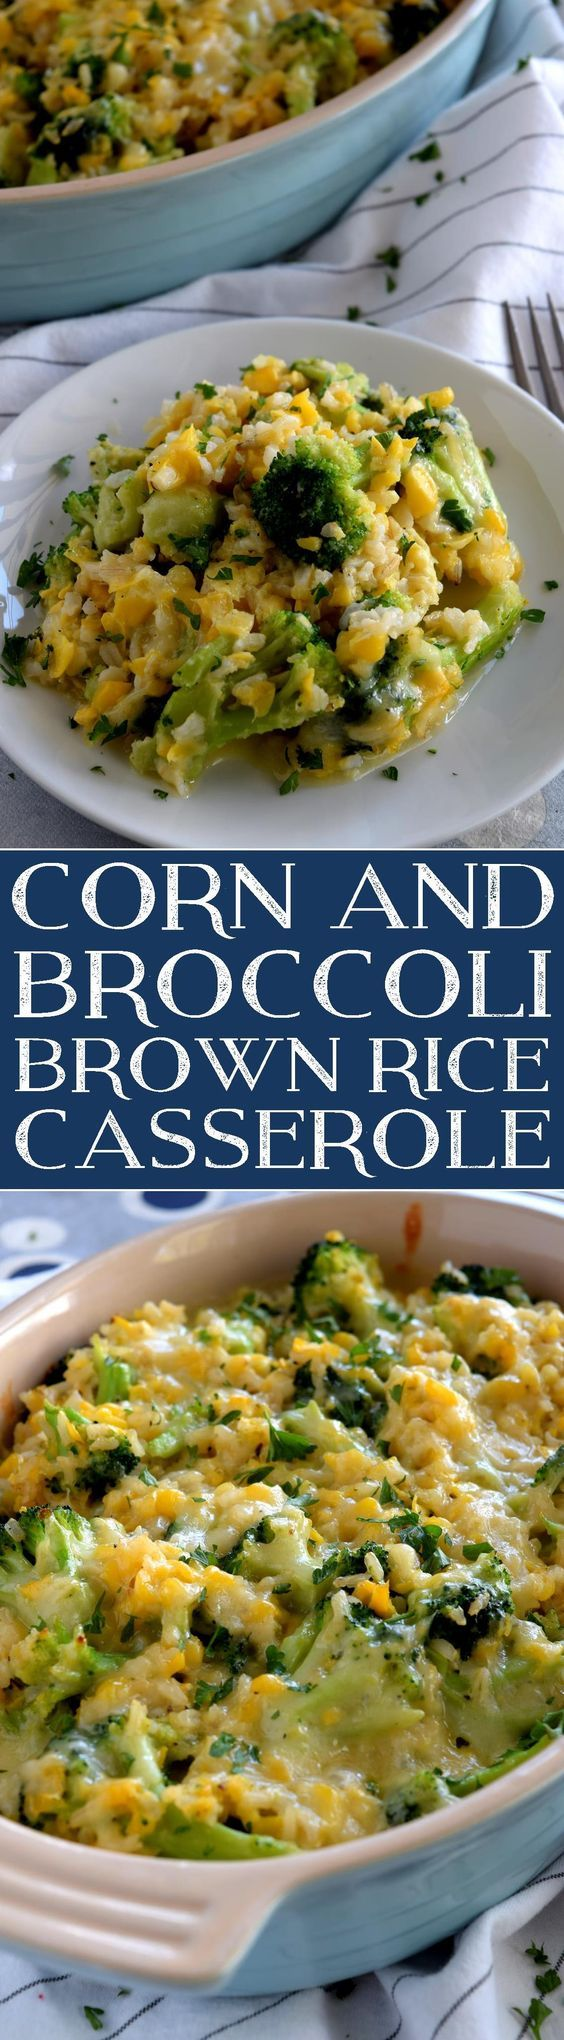 Corn and Broccoli Brown Rice Casserole {Sub in Yellow Rice and frozen or fresh Corn}